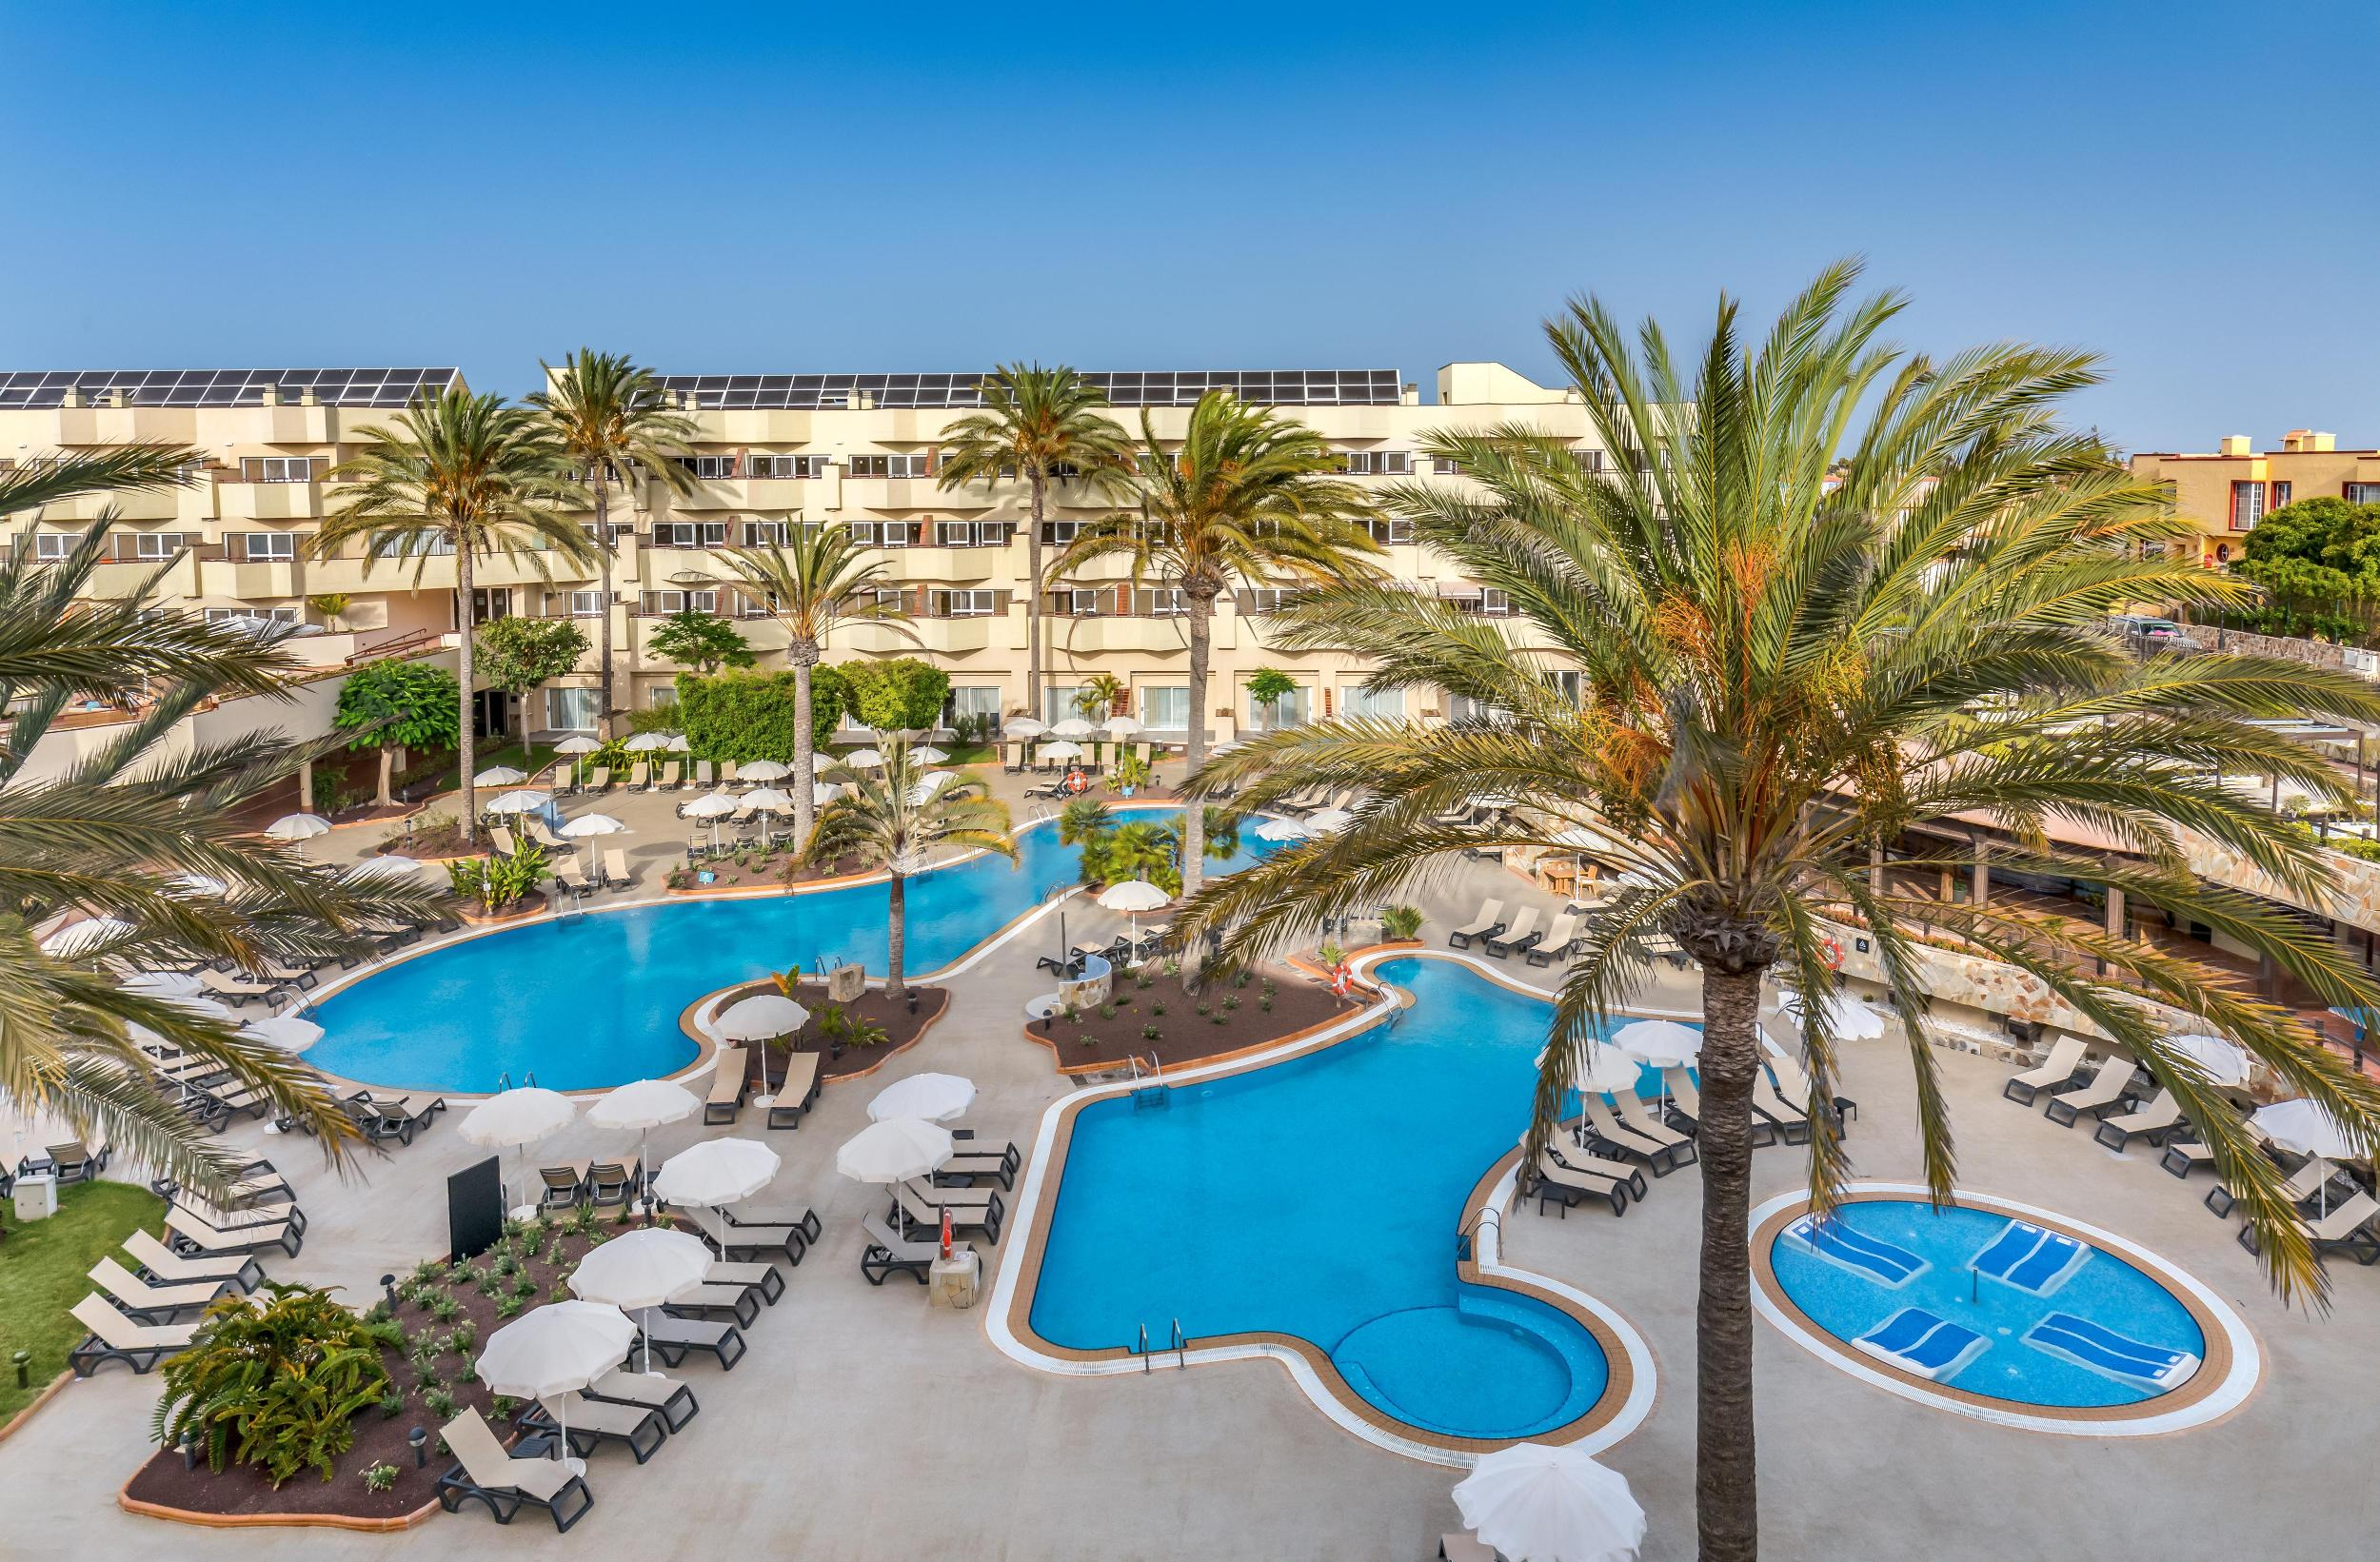 Barcelo Corralejo Bay Adults Only Hotel in Corralejo, Fuerteventura, Canary Islands